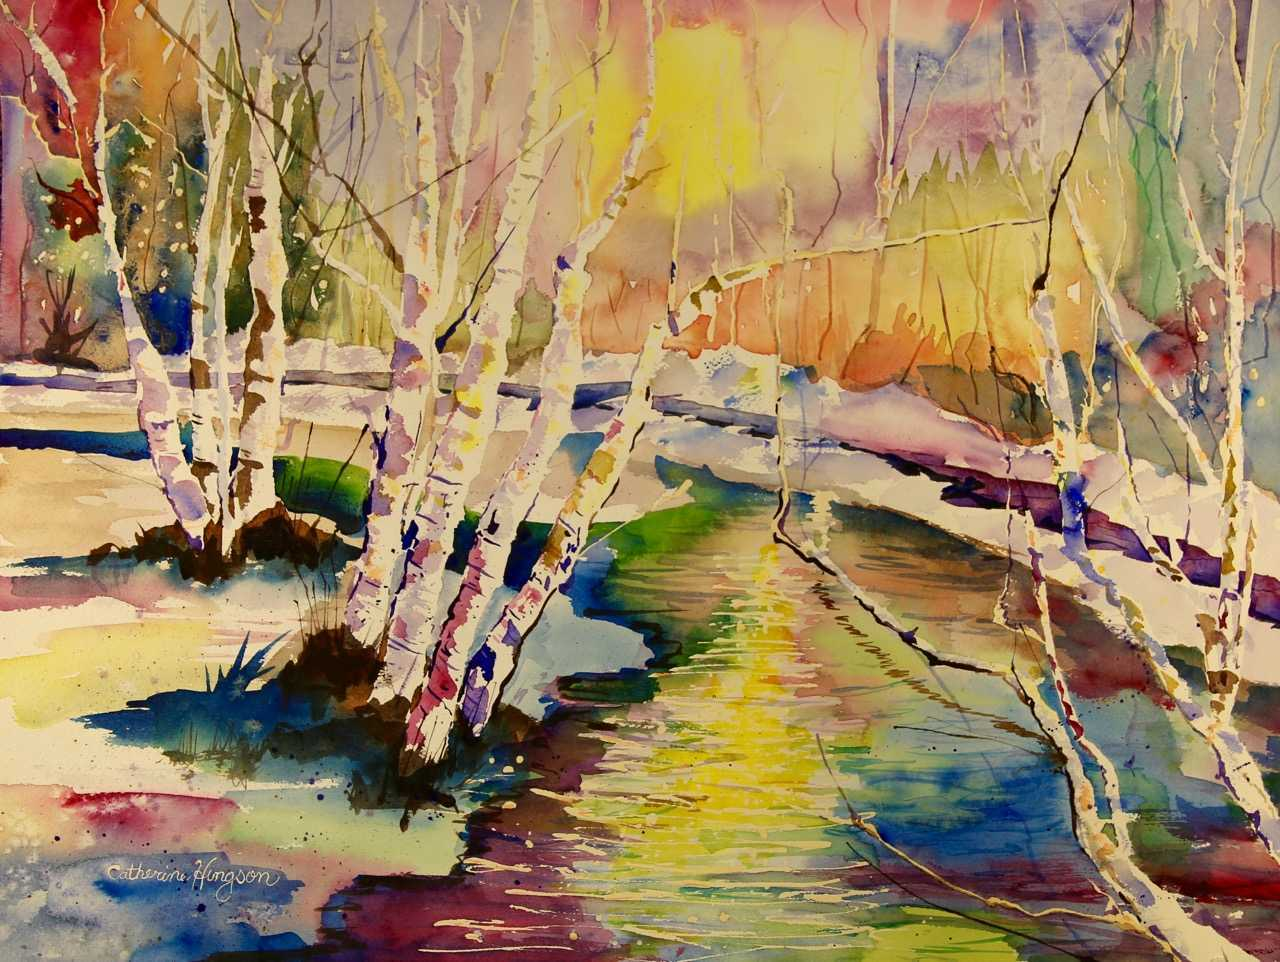 Watercolor painting of a colorful stream with trees by Catherine Hingson